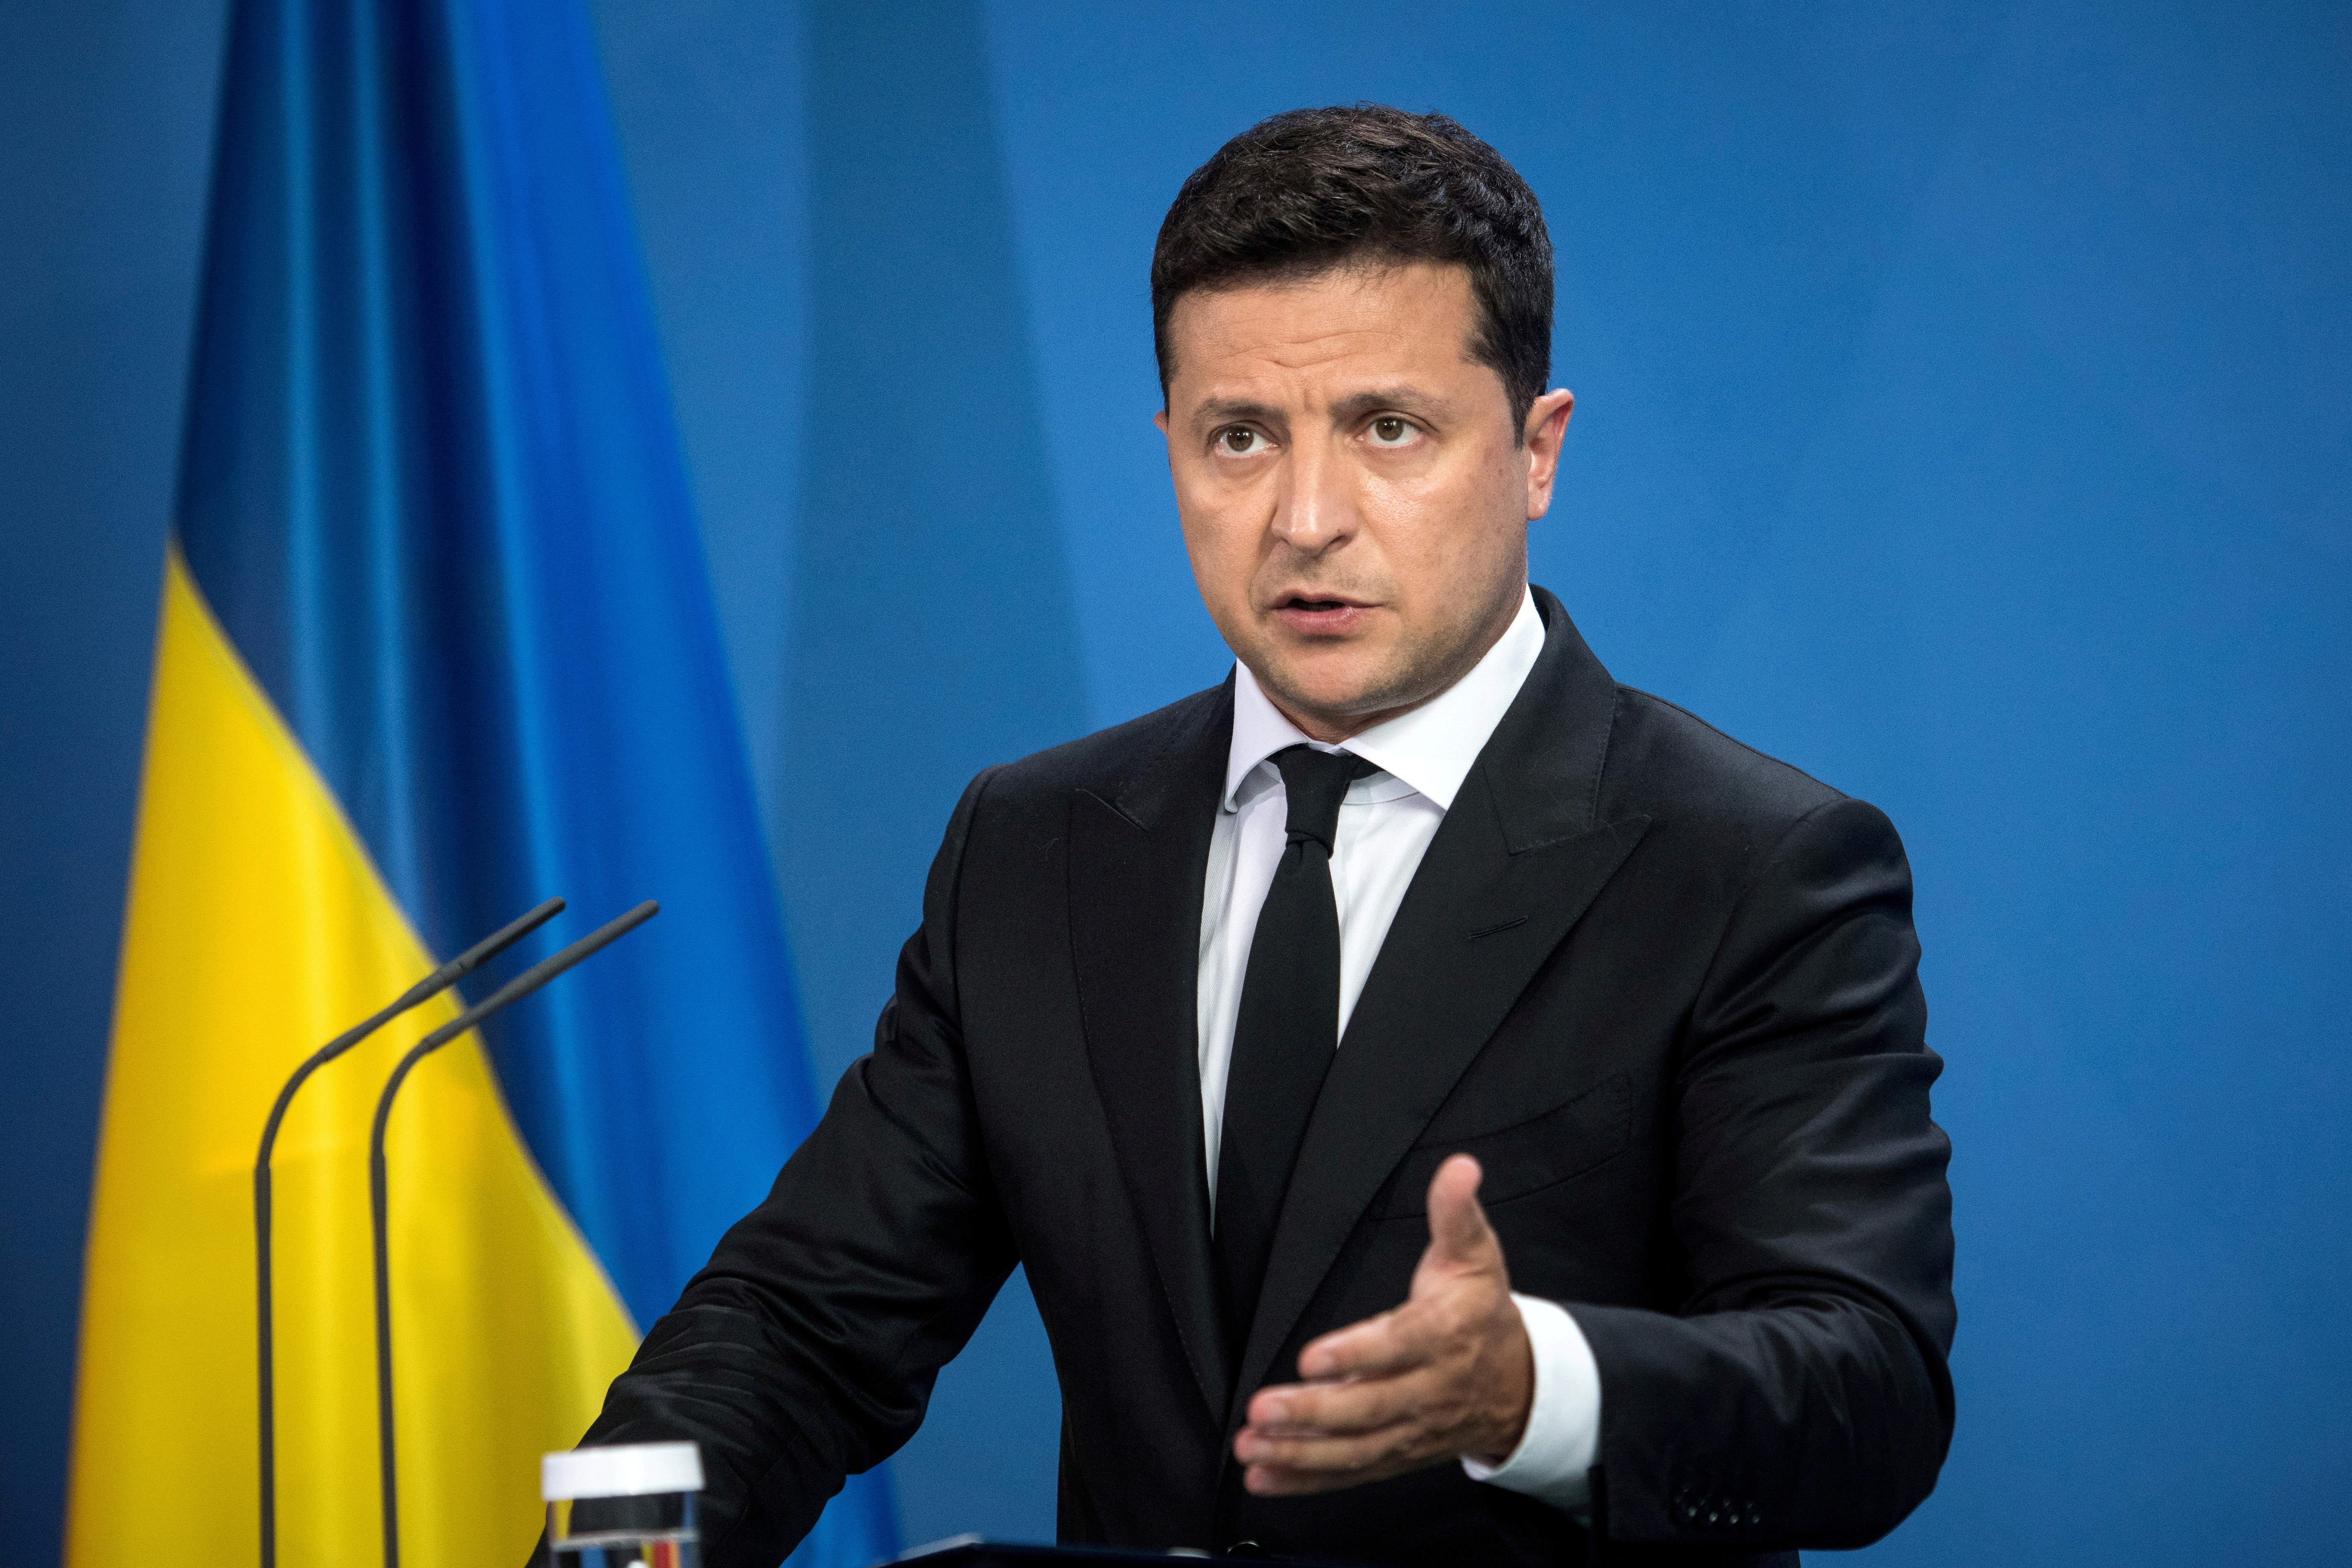 Ukrainian President Volodymyr Zelenskiy gives statements ahead of talks at the Chancellery in Berlin, Germany July 12, 2021. Stefanie Loos/ Pool via REUTERS/File Photo